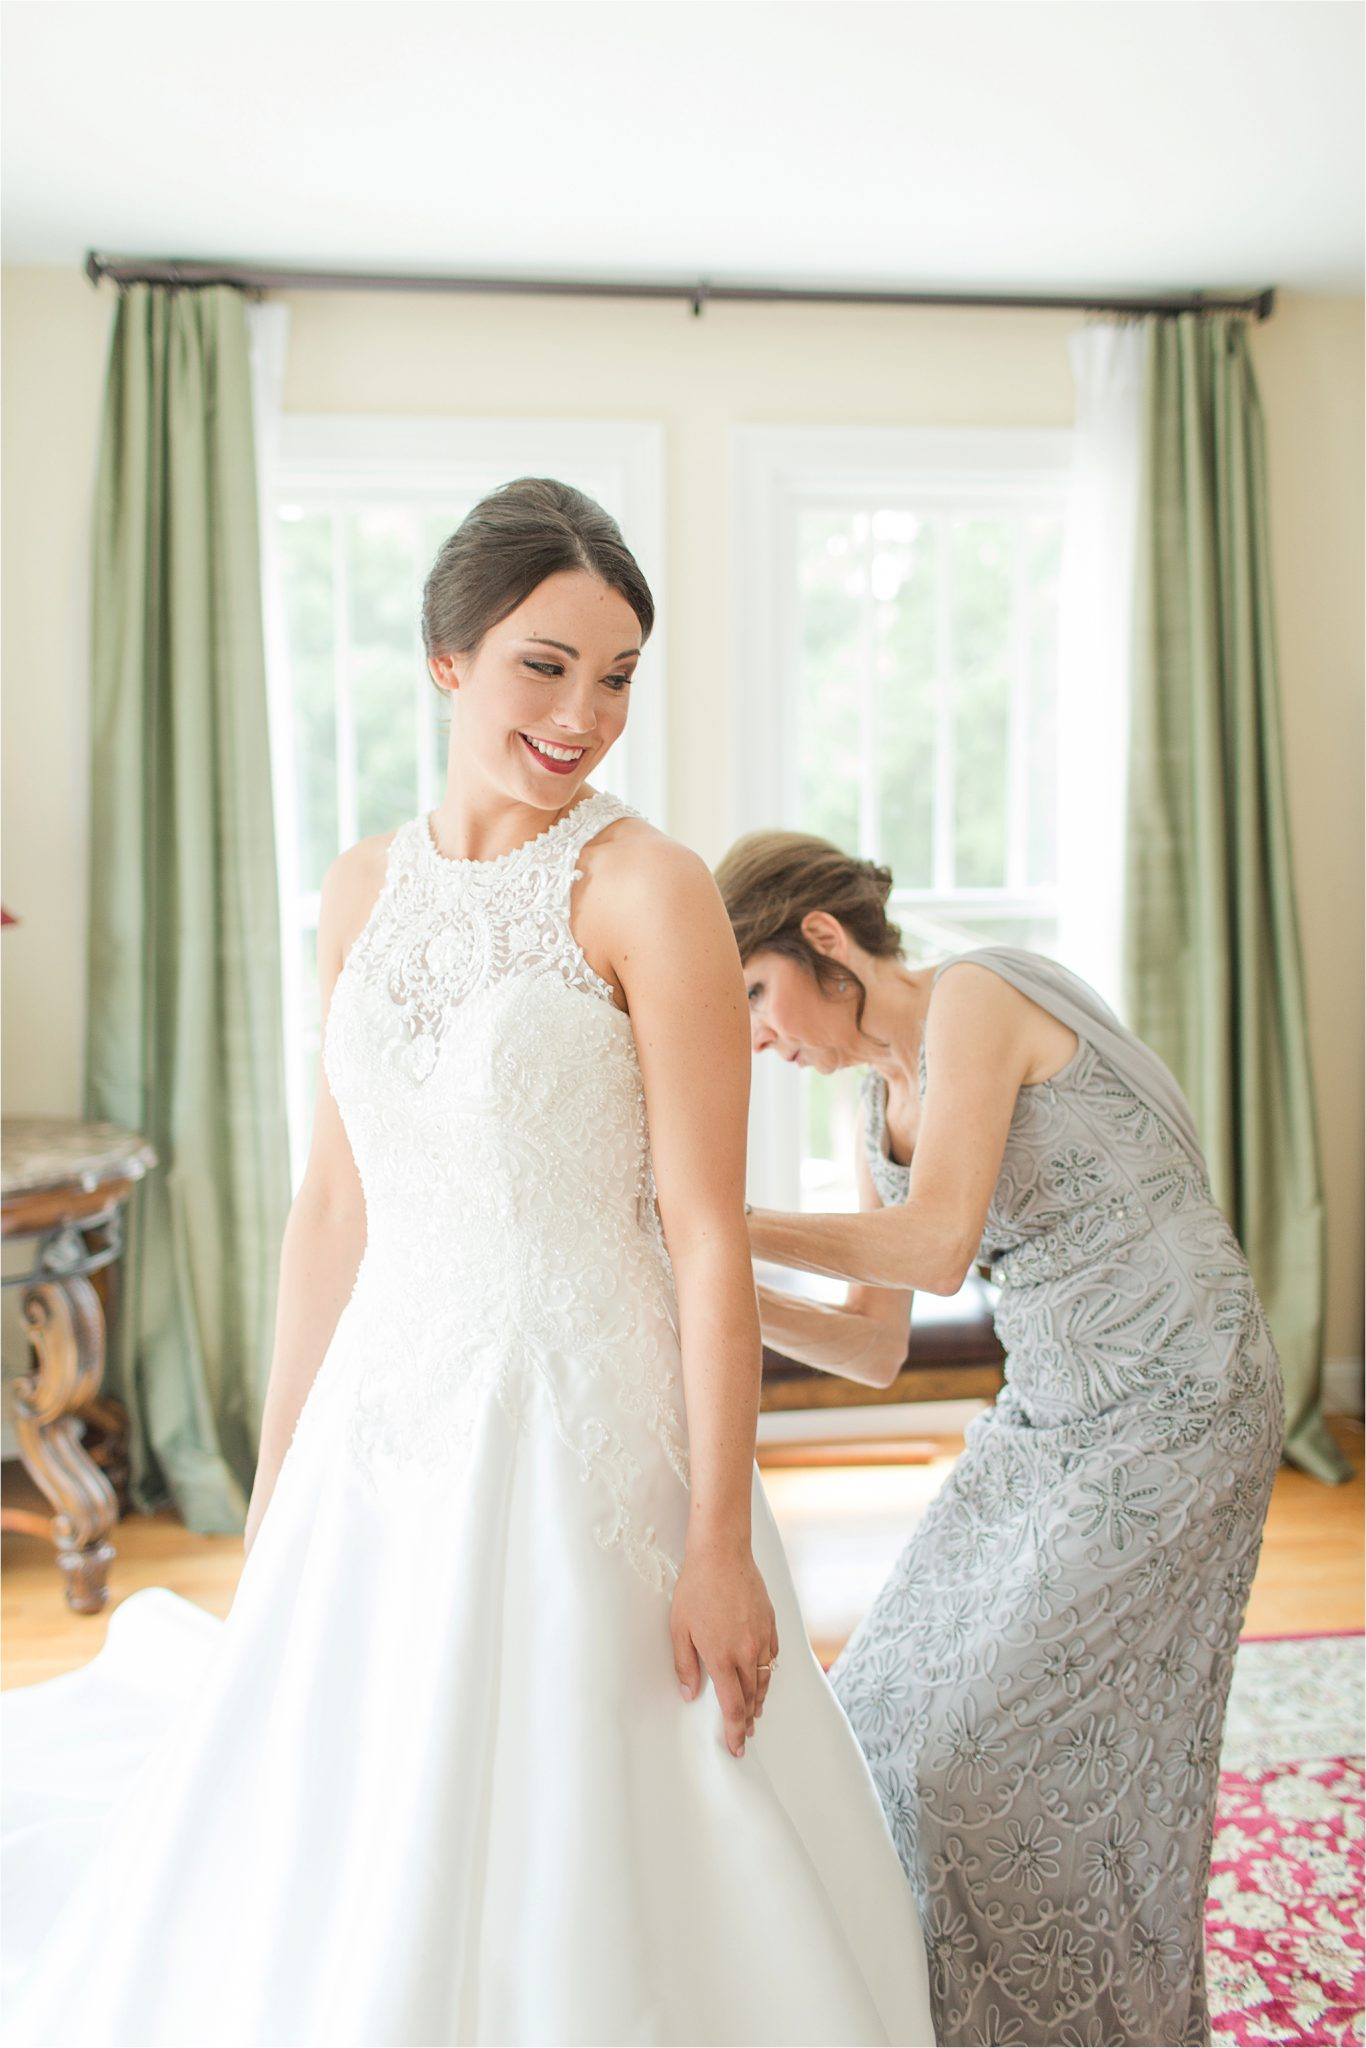 Sonnet House, Birmingham Alabama Wedding Photographer, Wedding dress, Wedding details